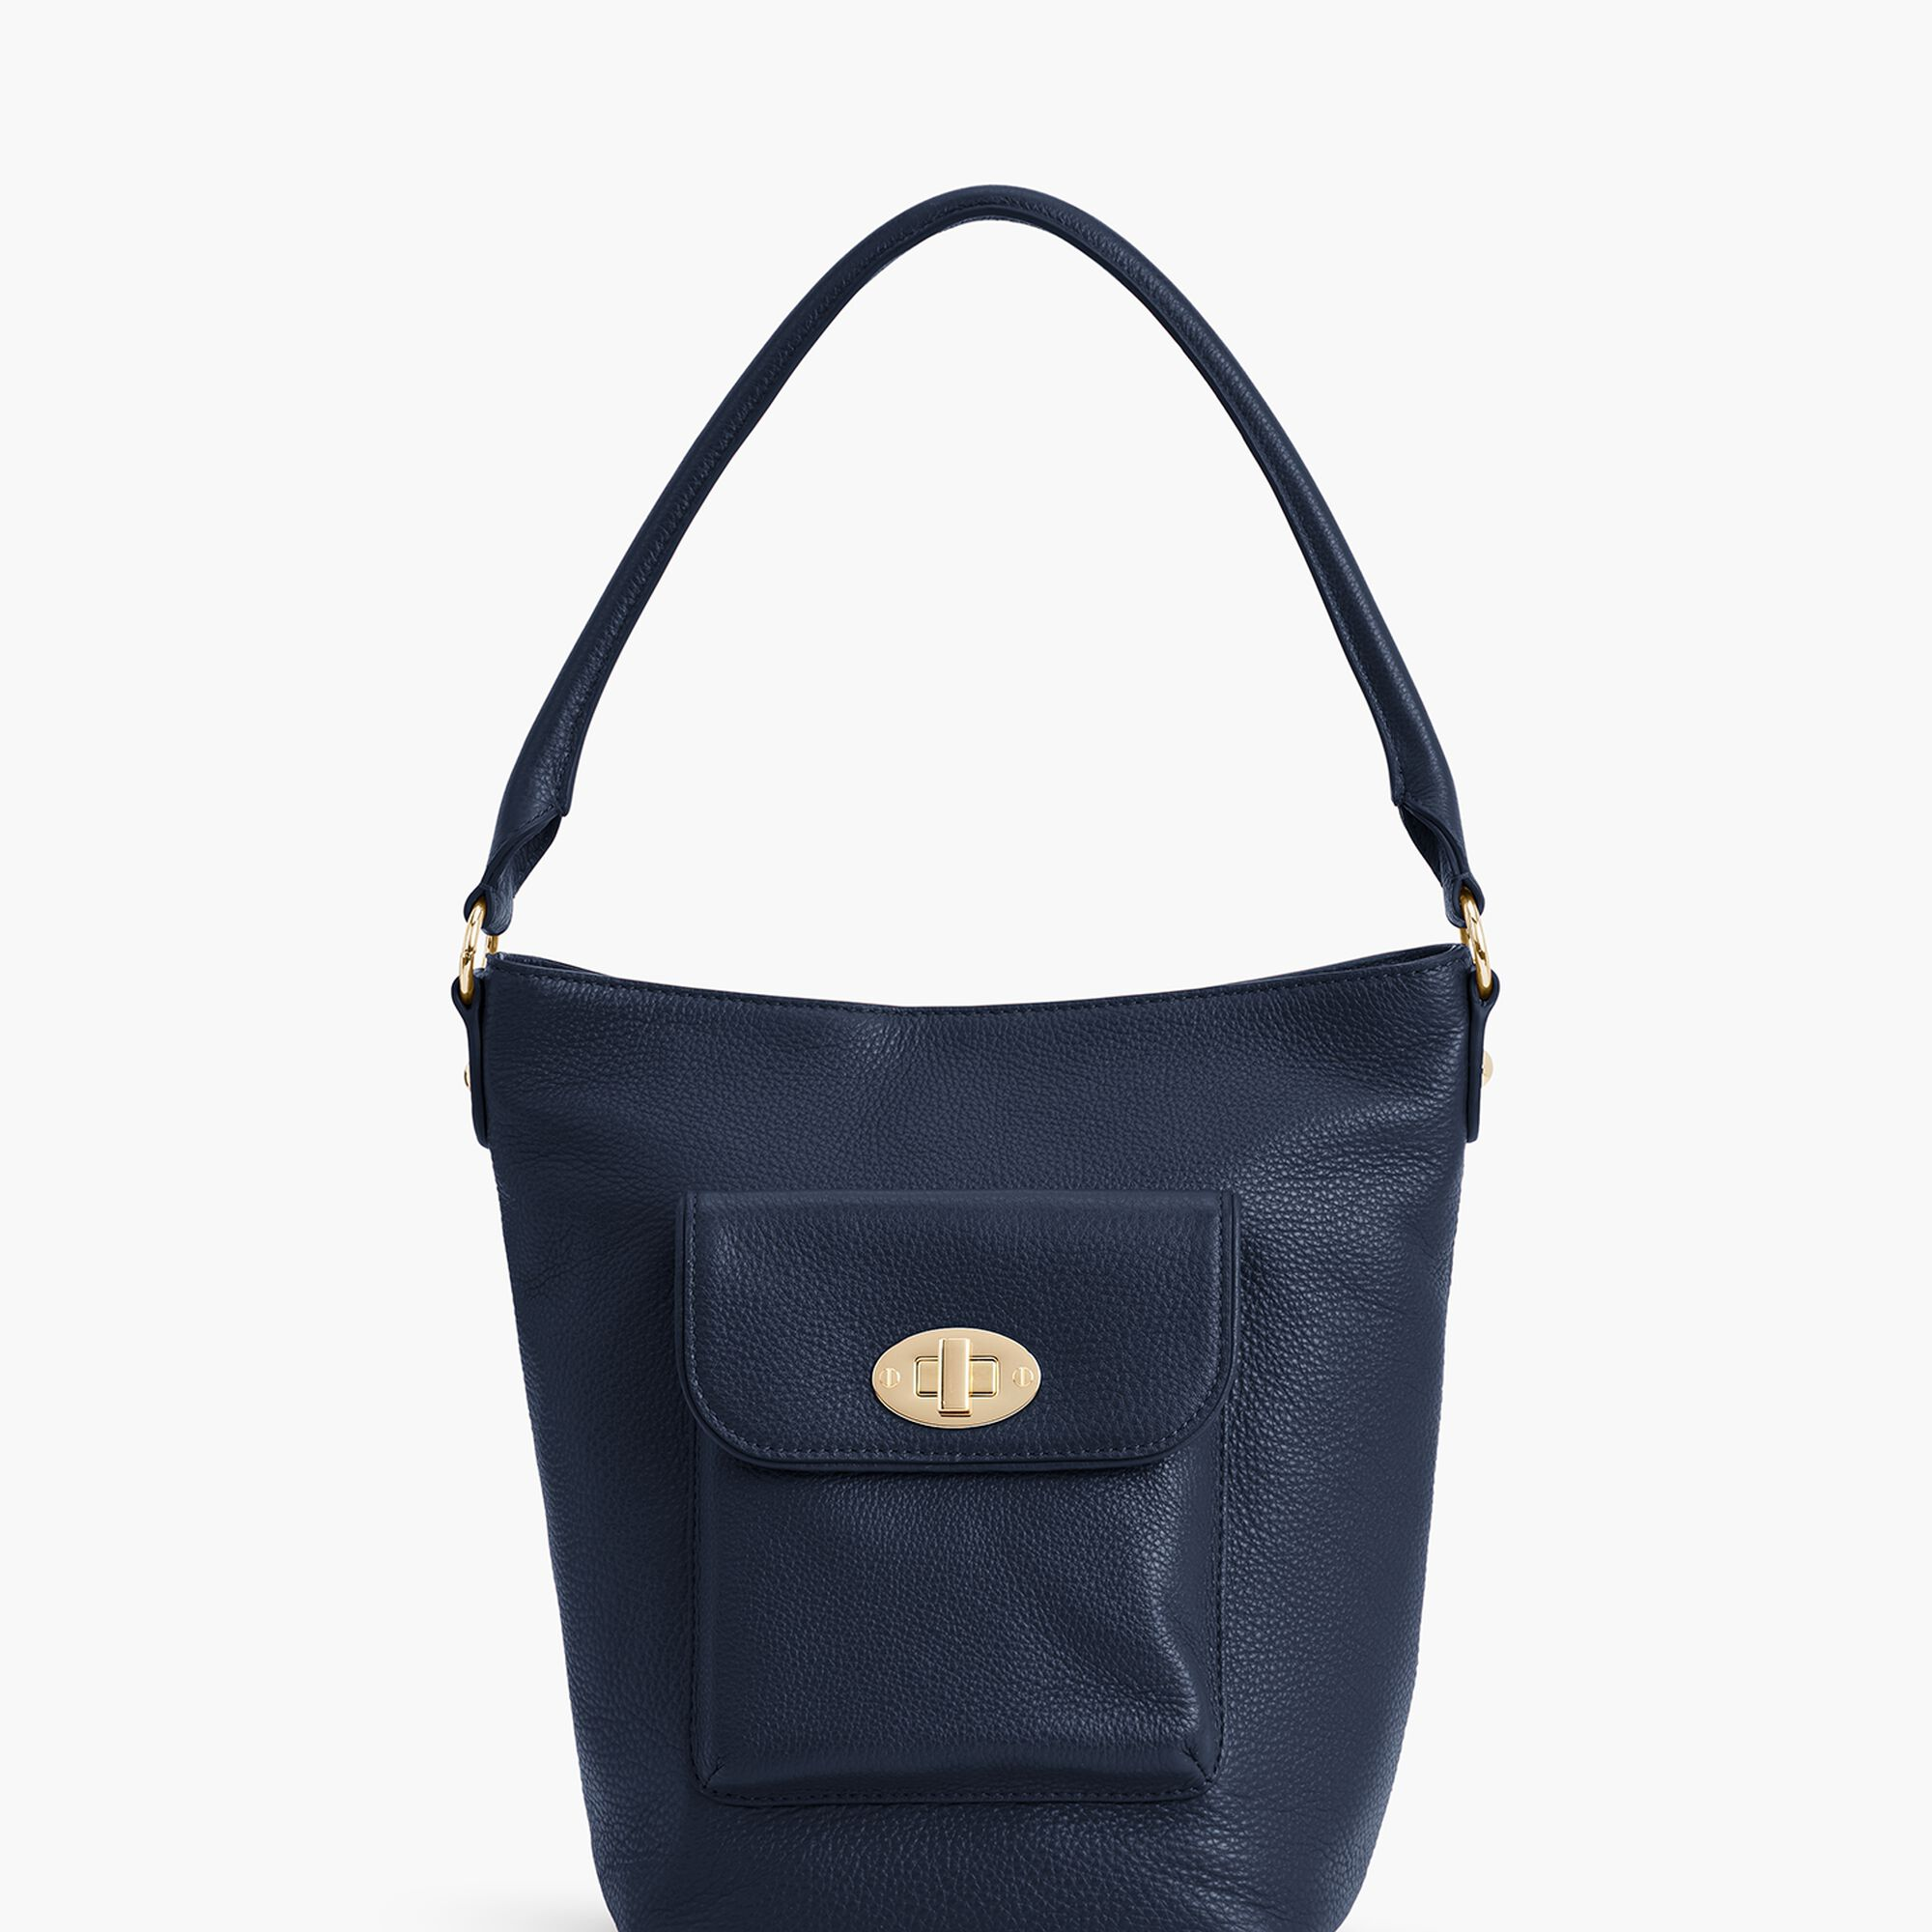 Images. Turnlock Bucket Bag - Pebble Leather 73b3b9cc93e84